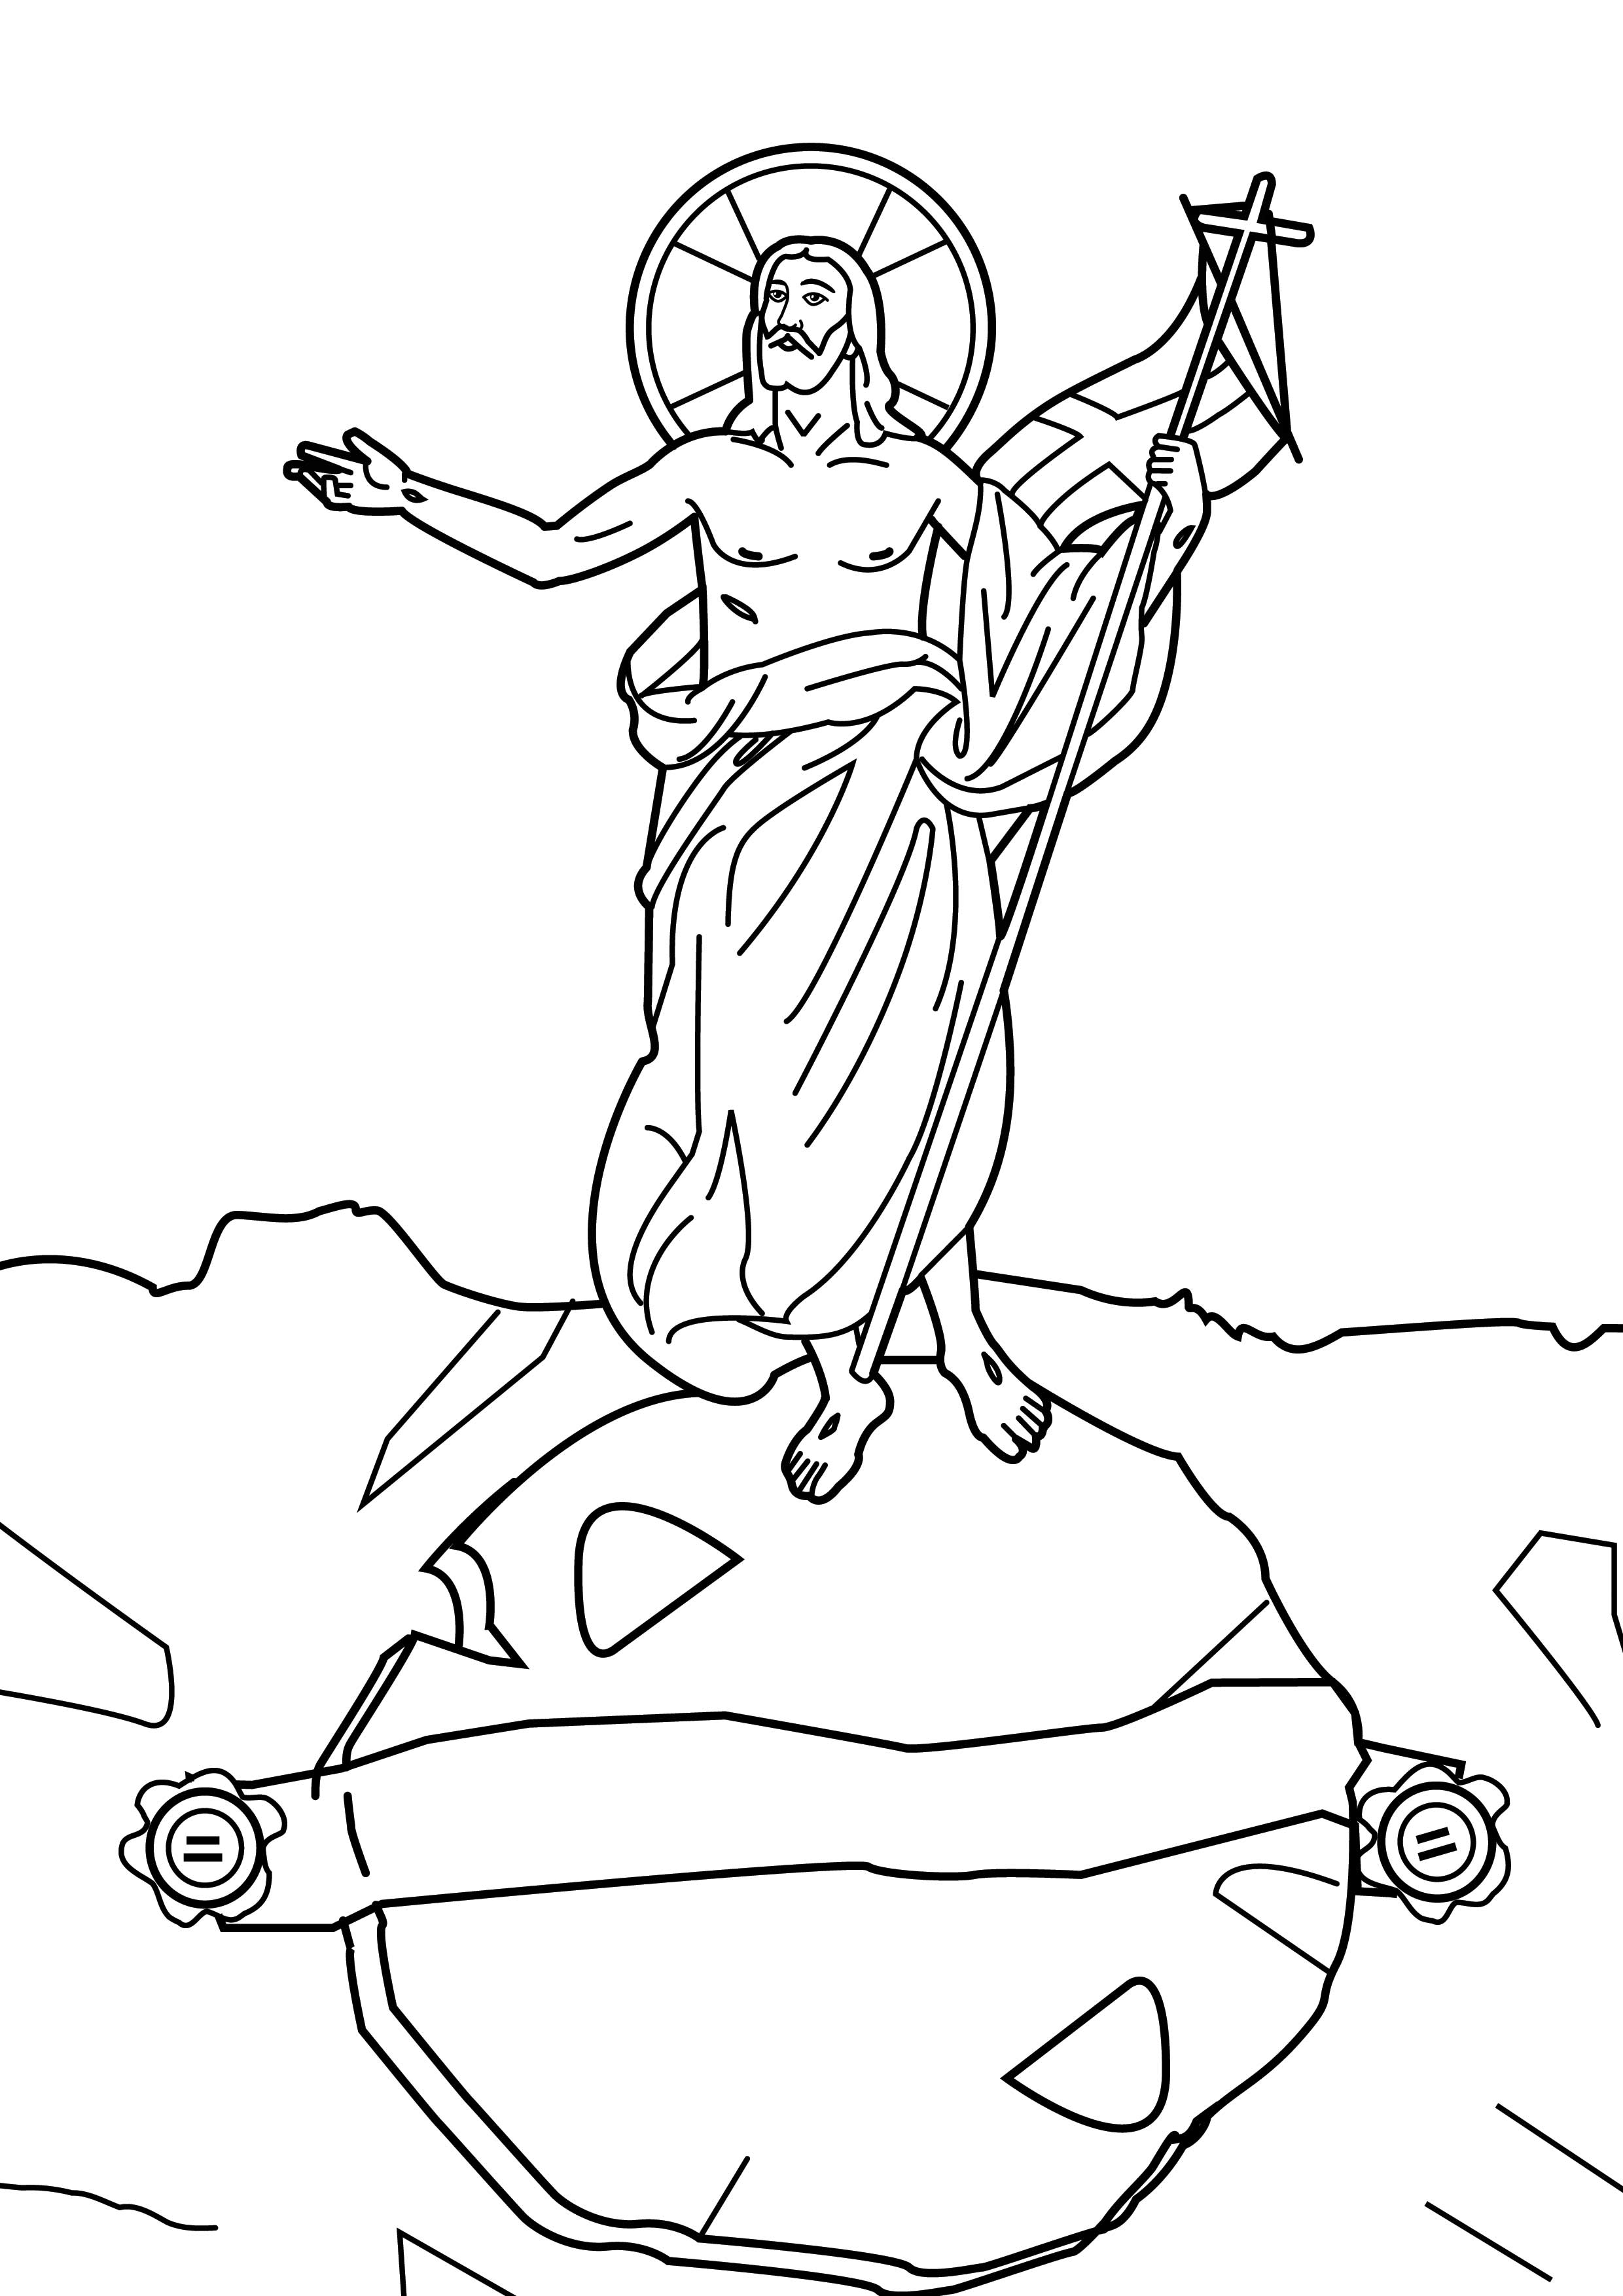 "St-Takla.org Image: Coloring picture of Resurrection of the Lord Jesus Christ from the dead on the third day - Courtesy of ""Encyclopedia of the Bible Coloring Images"" ���� �� ���� ������ ����: ���� ����� ������ ���� ���� ������ �� ��� ������� �� ����� ������ - ������ ����: ������ ��� ������ ������ �������"